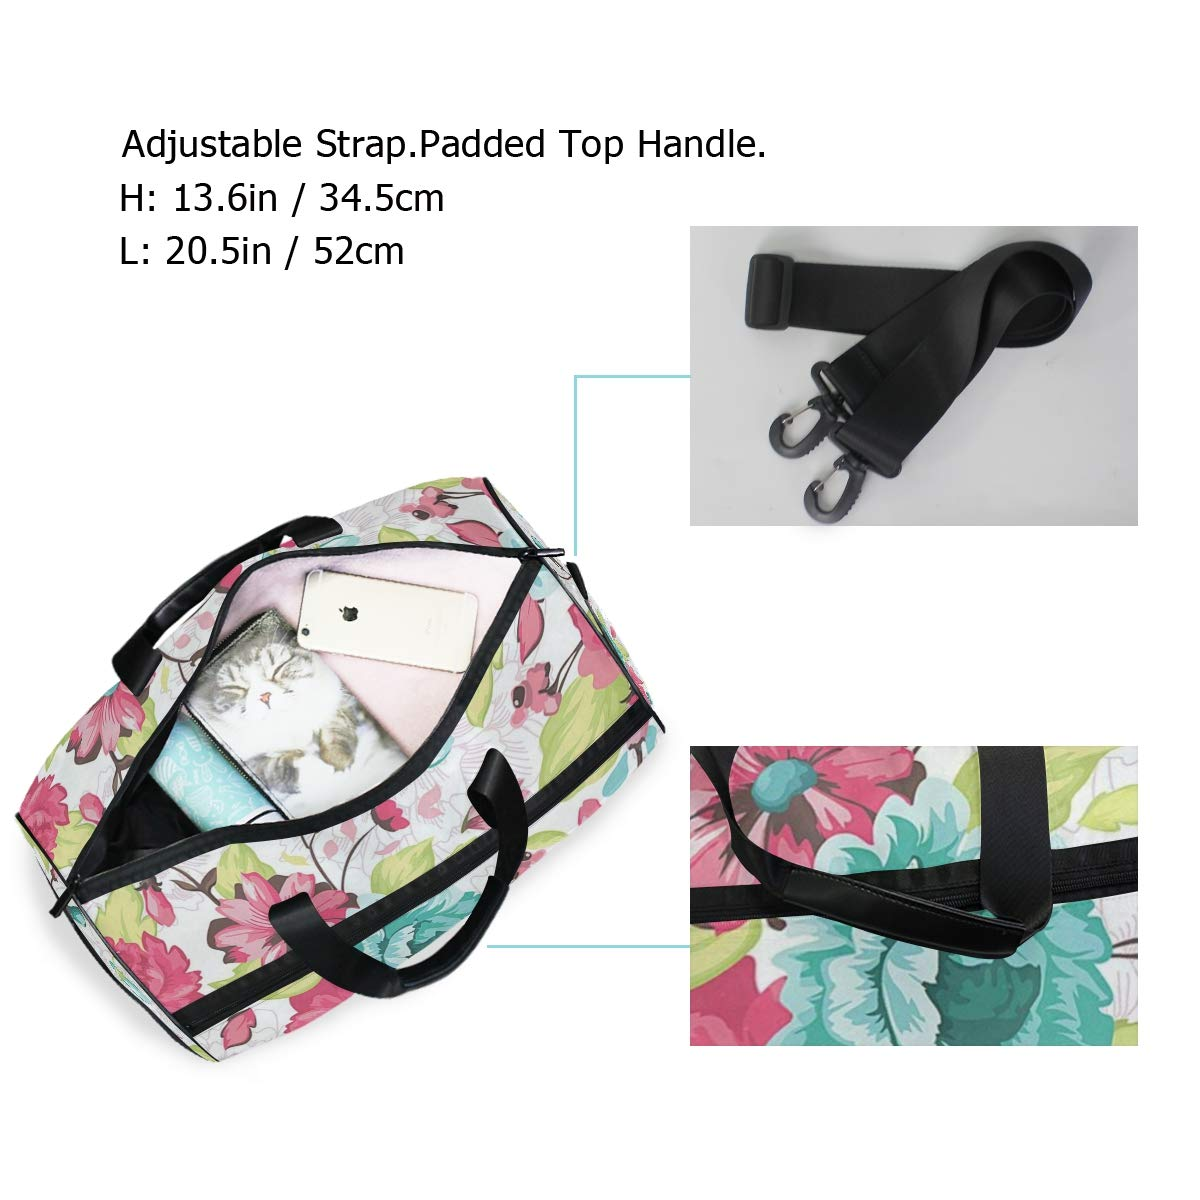 Travel Gym Bag Happy Mothers Day Floral Flowers Love Mom Pattern Casual Fashion Bag With Shoes Compartment Foldable Duffle Bag For Men Women